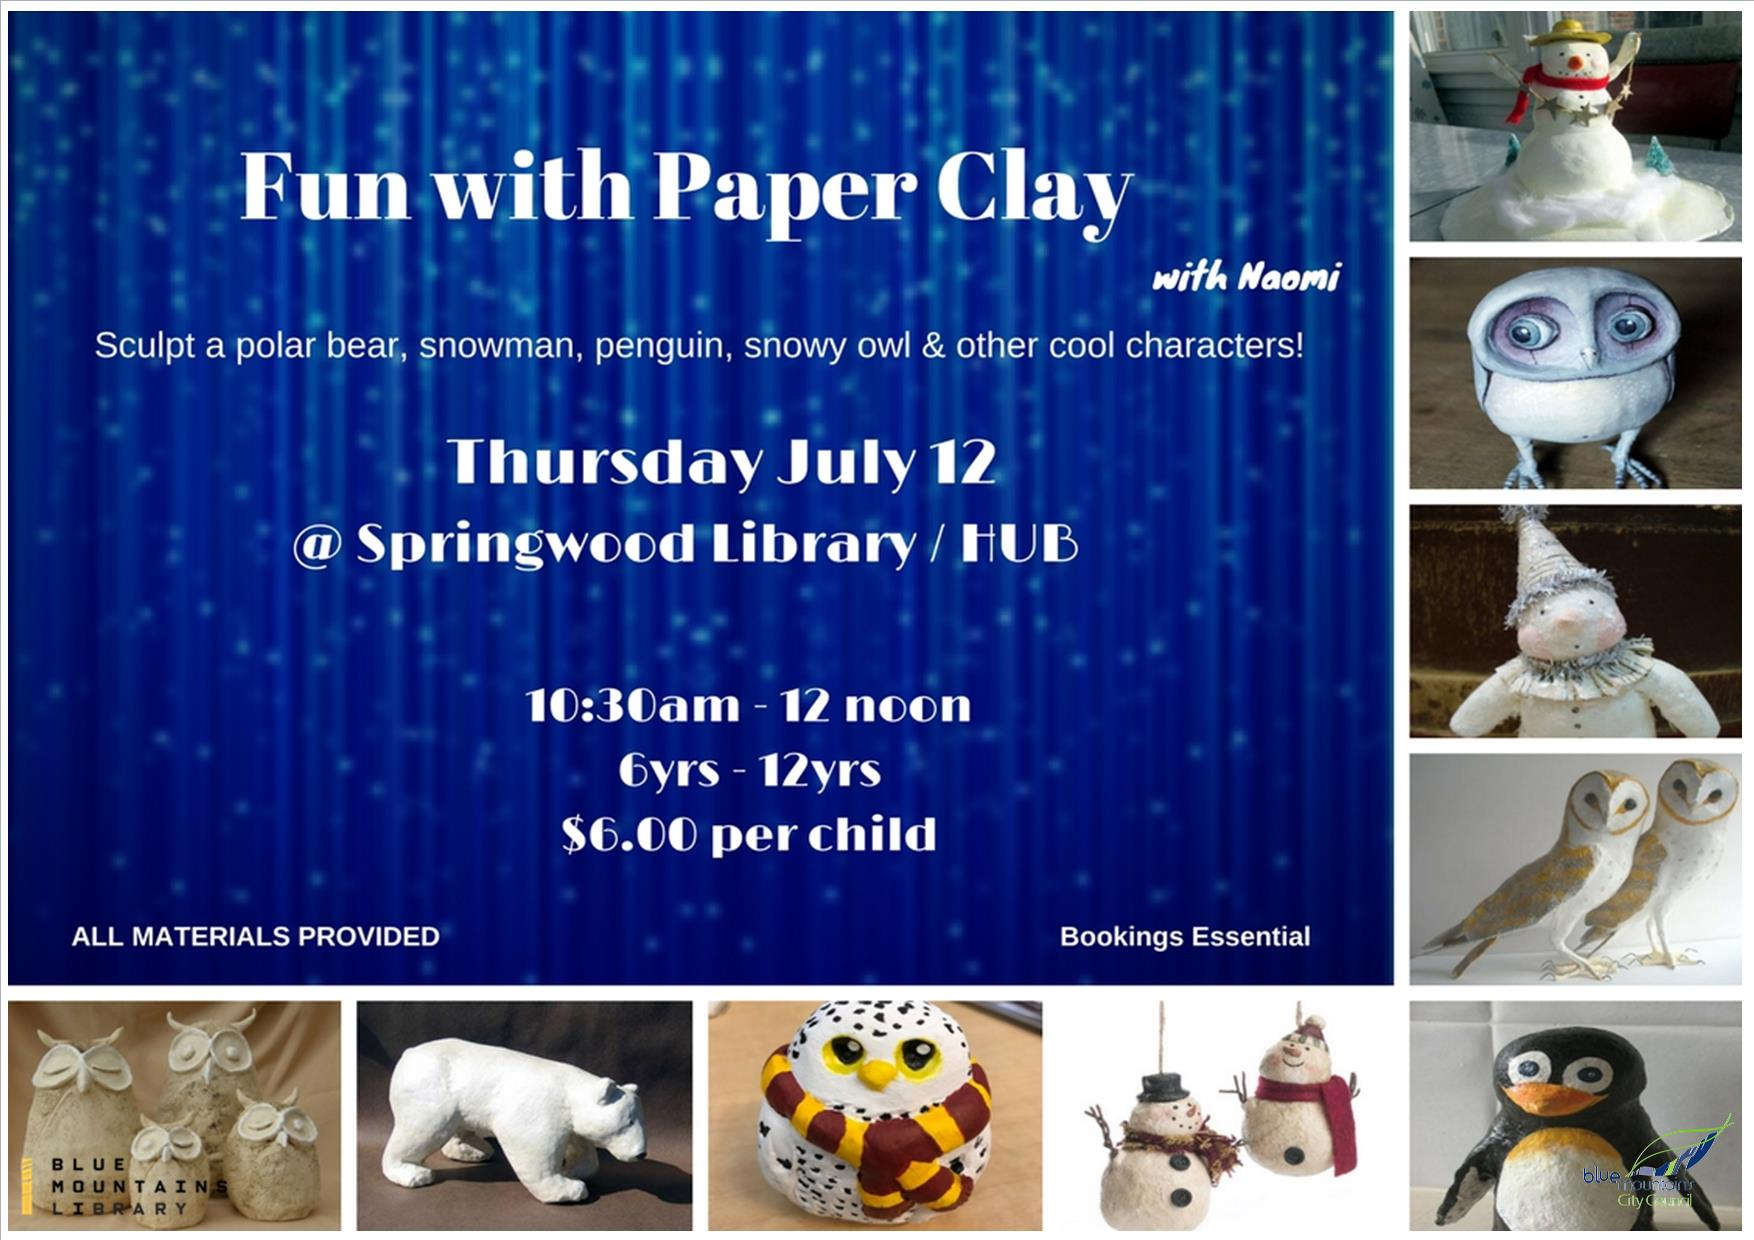 Fun with Paper Clay, Springwood Library, Thursday 12th July 10:30am - 12noon, 6-12 years, $6 per child